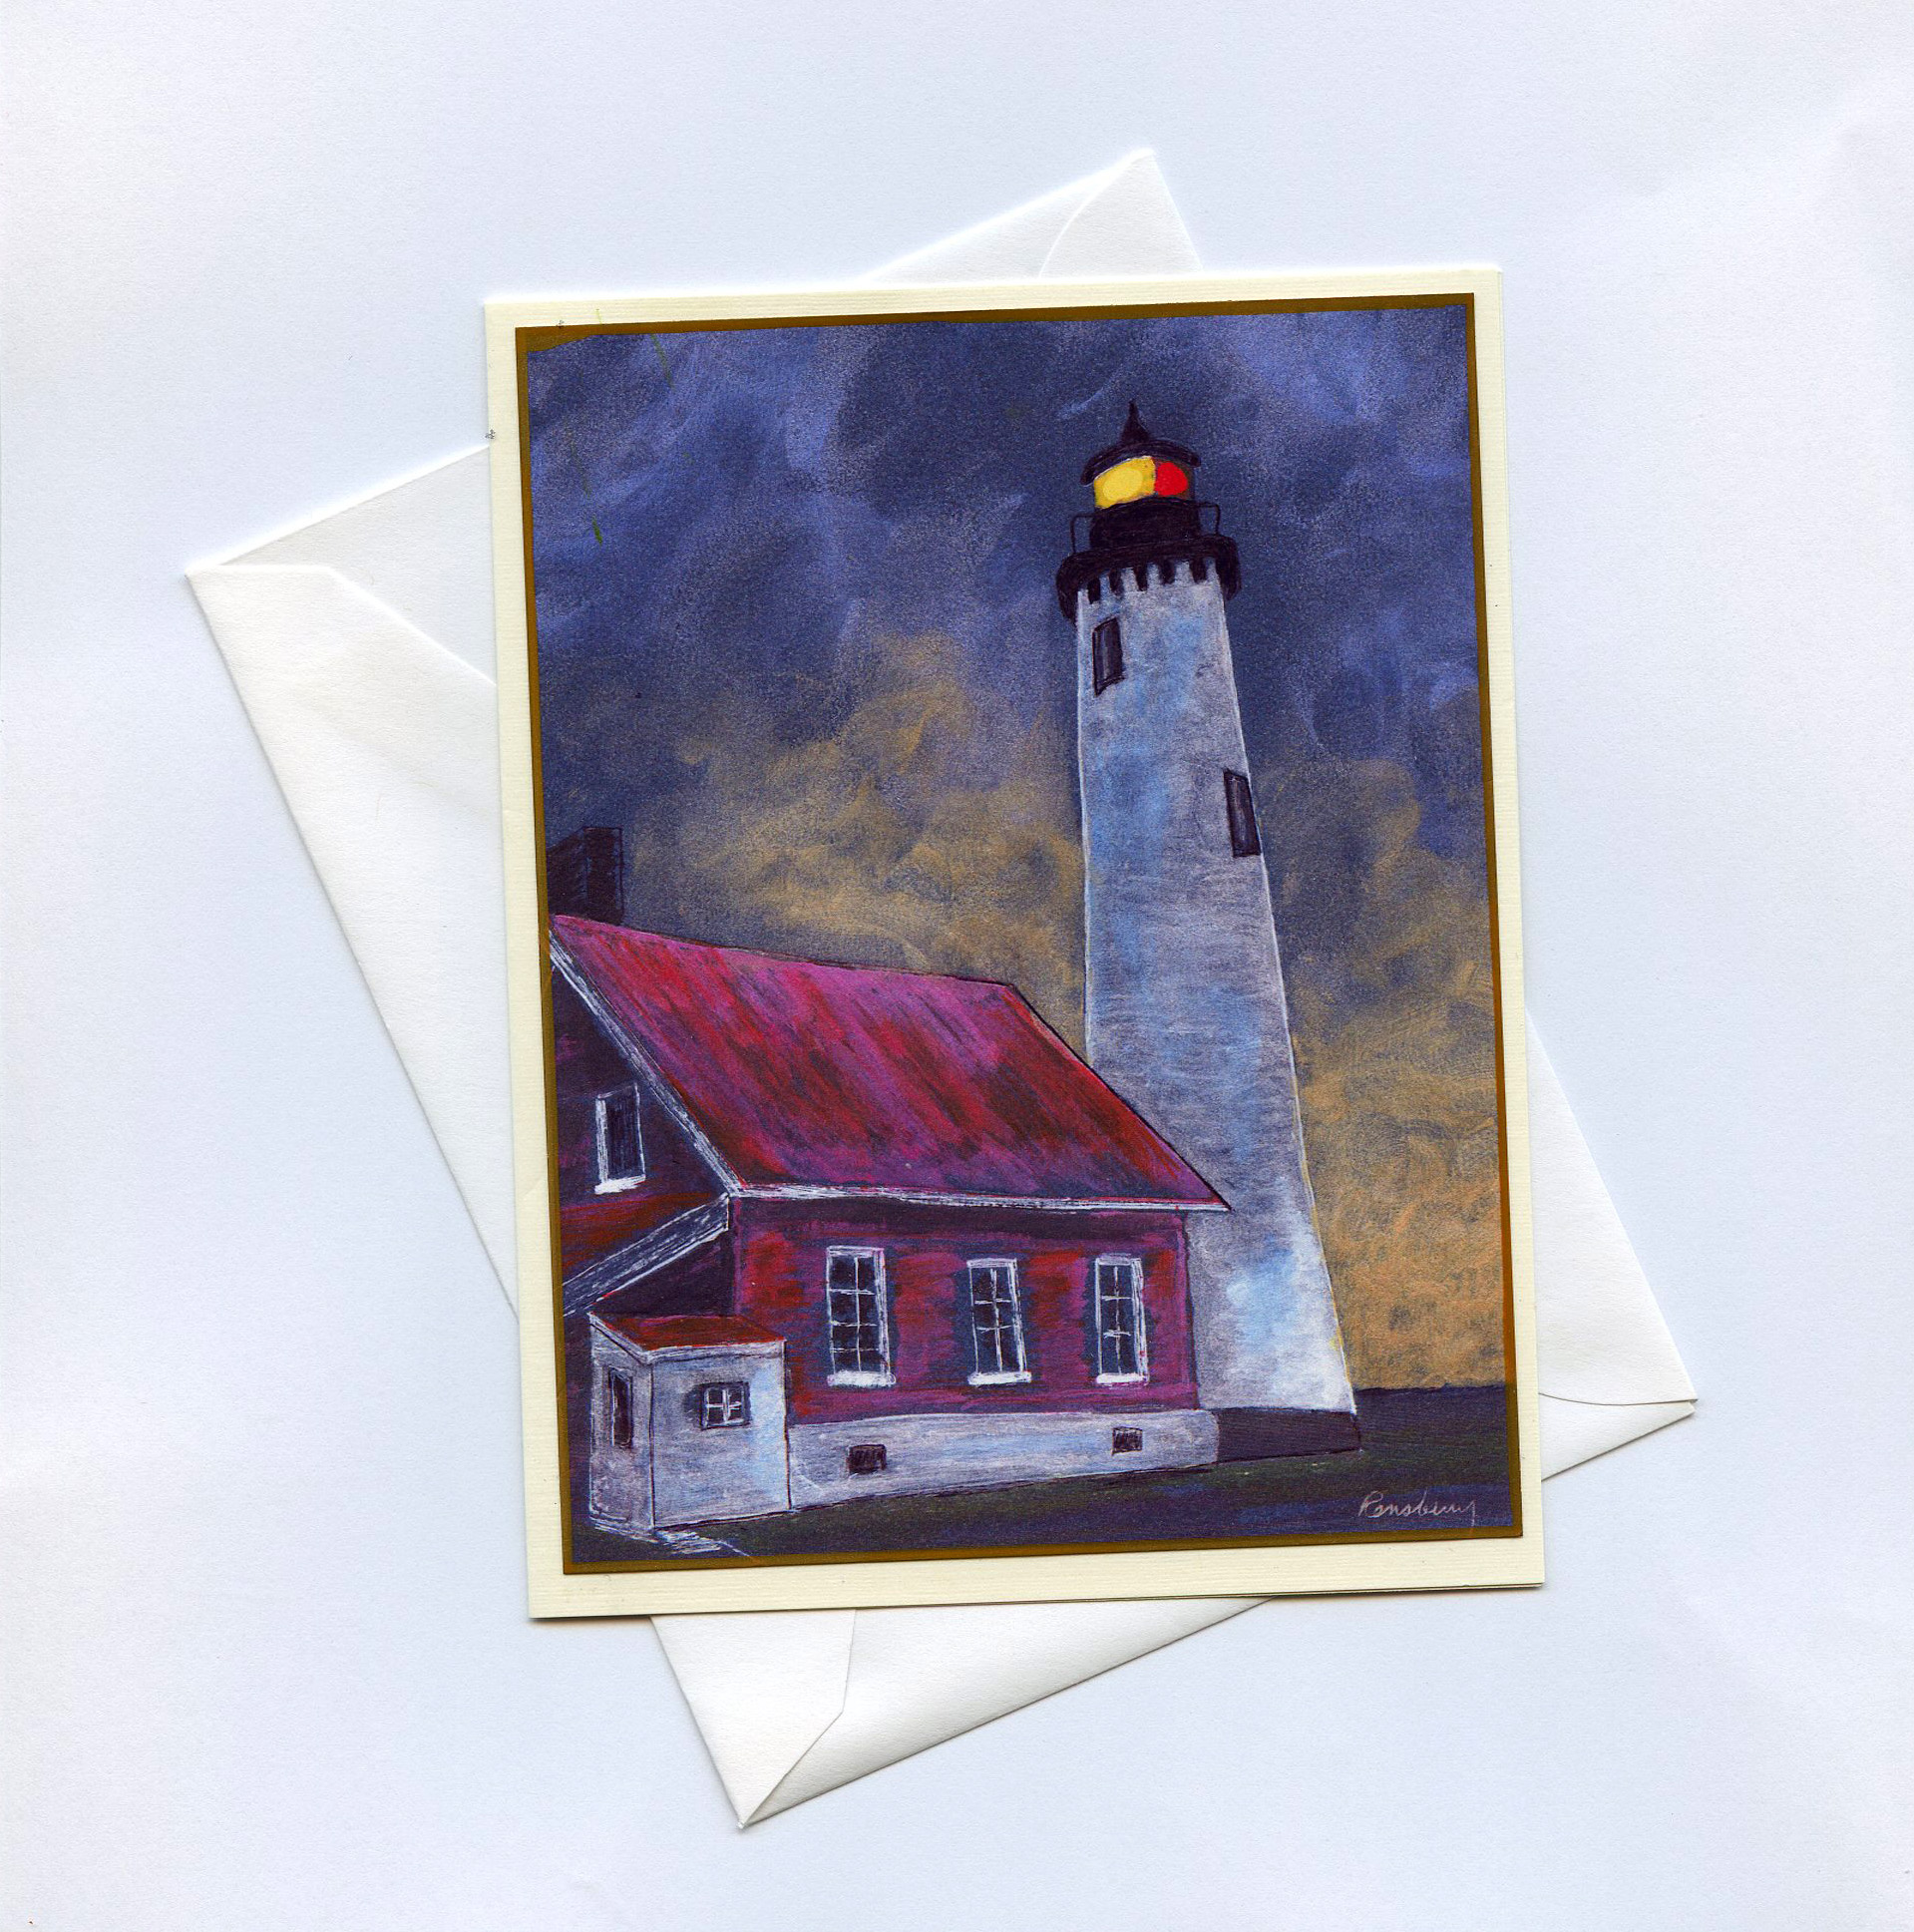 Blank Lighthouse Series Cards, created by Richard Rensberry